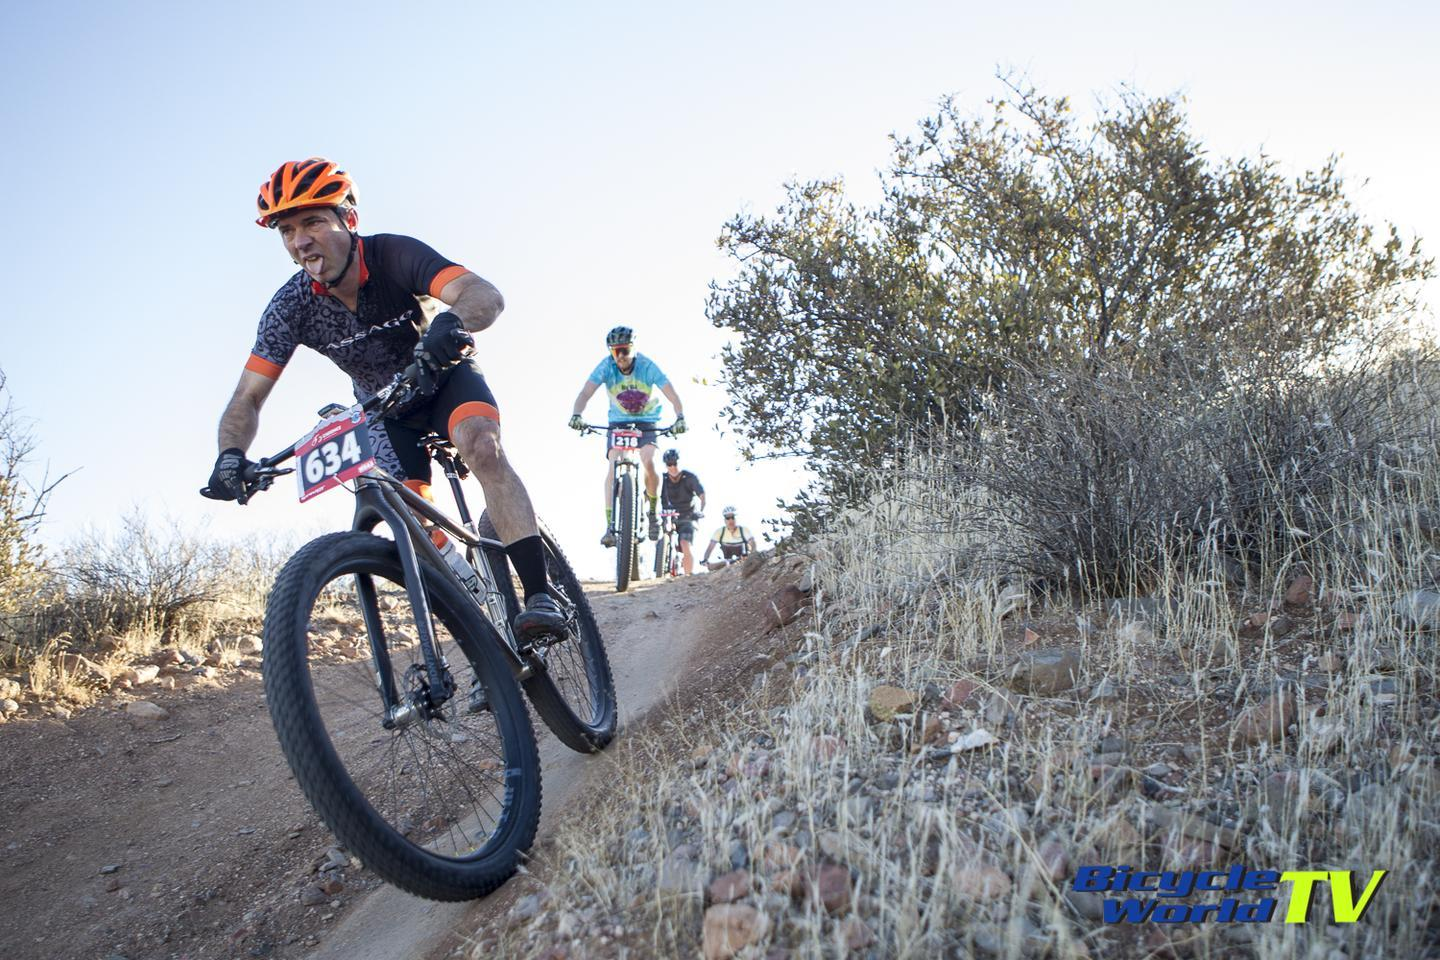 Arizona MTB Explodes with 900 riders in Series Opener